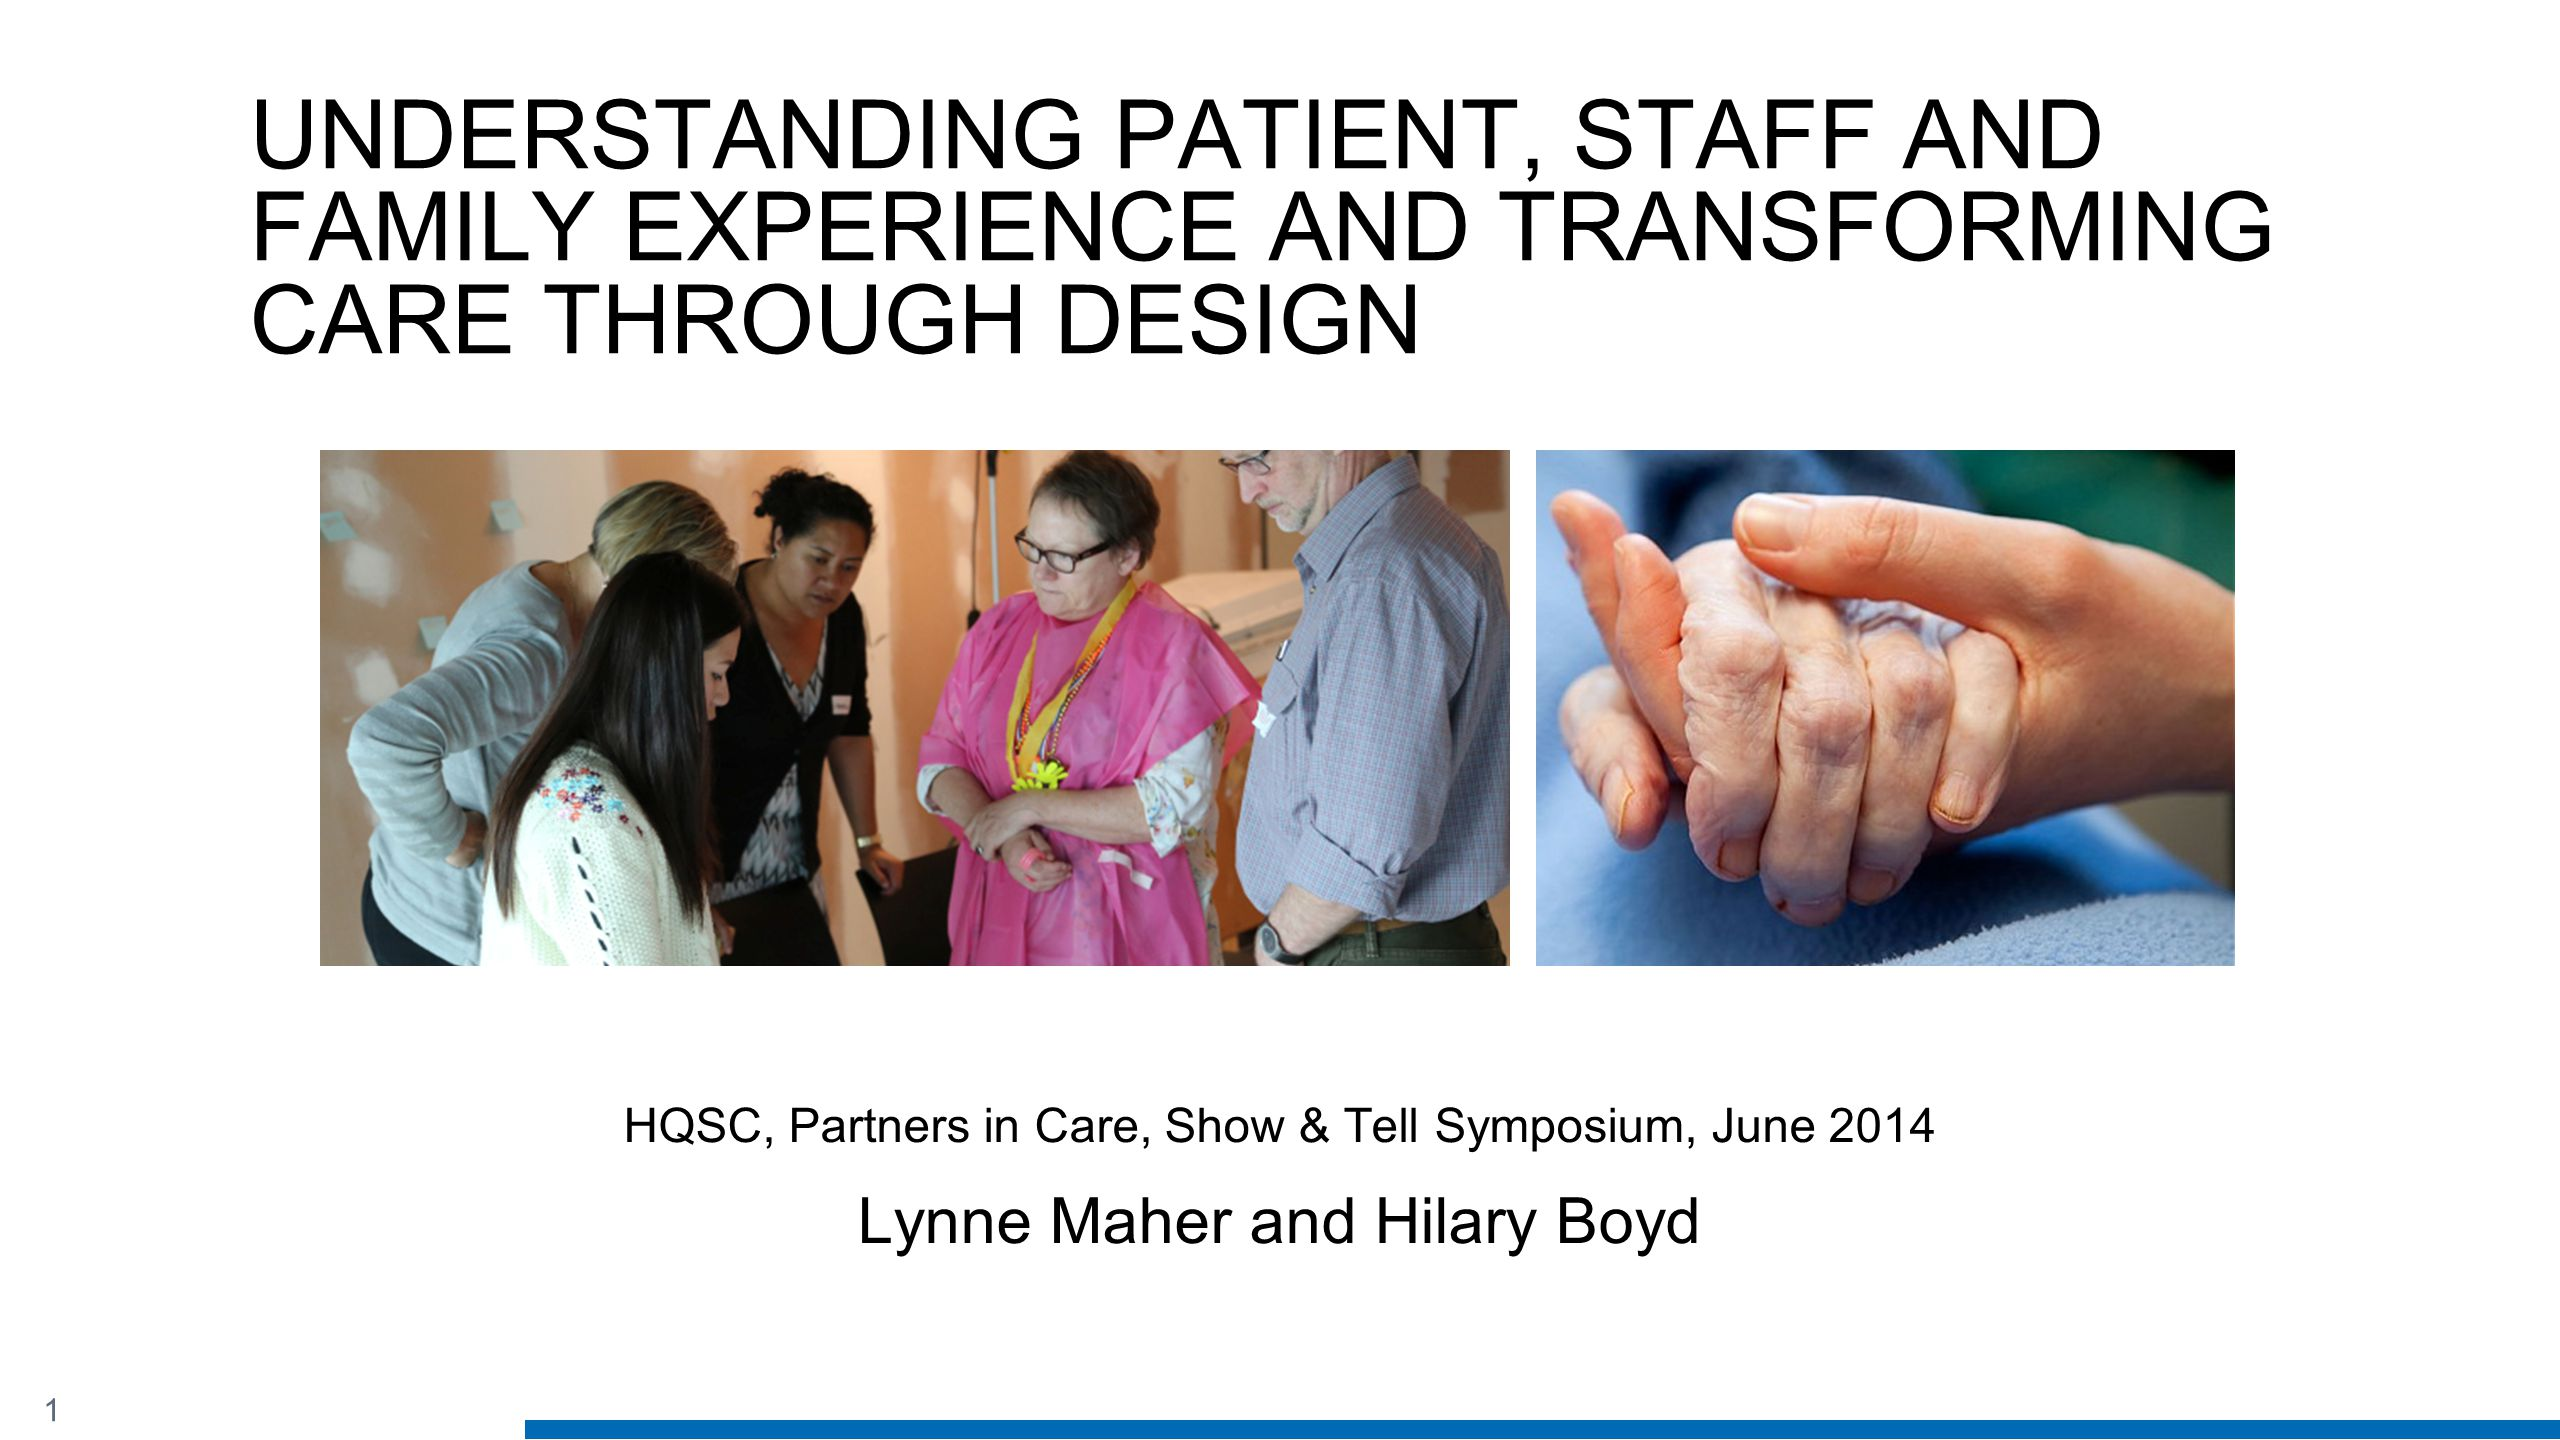 1 UNDERSTANDING PATIENT, STAFF AND FAMILY EXPERIENCE AND TRANSFORMING CARE THROUGH DESIGN HQSC, Partners in Care, Show & Tell Symposium, June 2014 Lynne Maher and Hilary Boyd